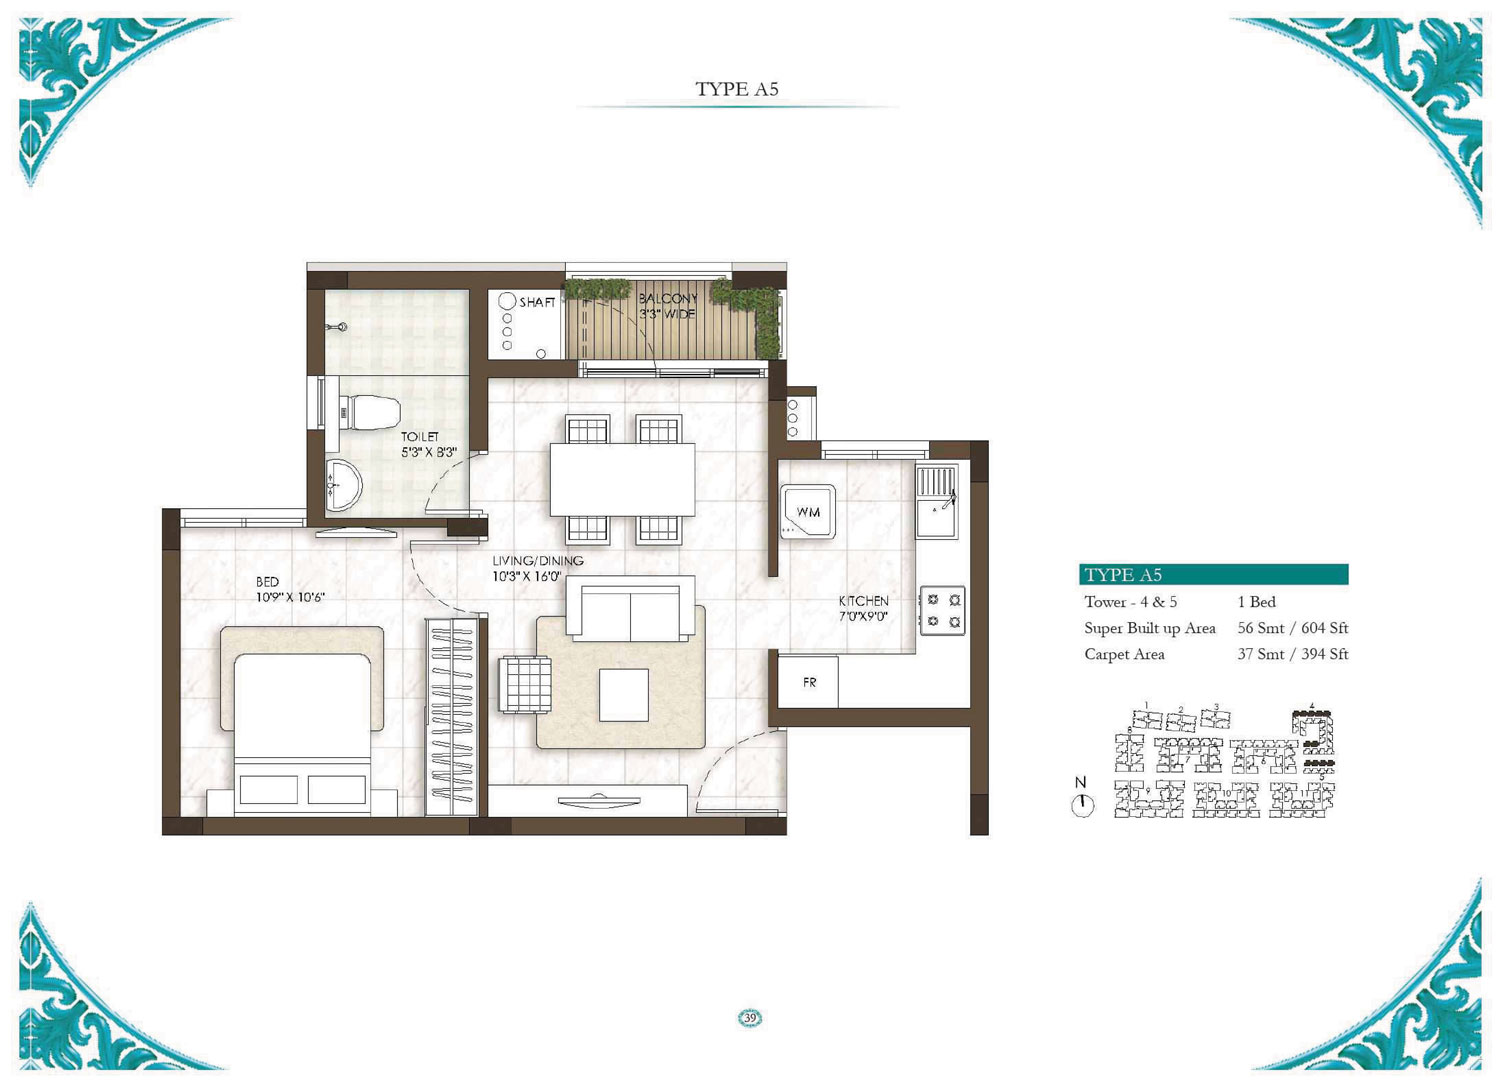 Type A5 - 1 Bed - 604 Sq Ft